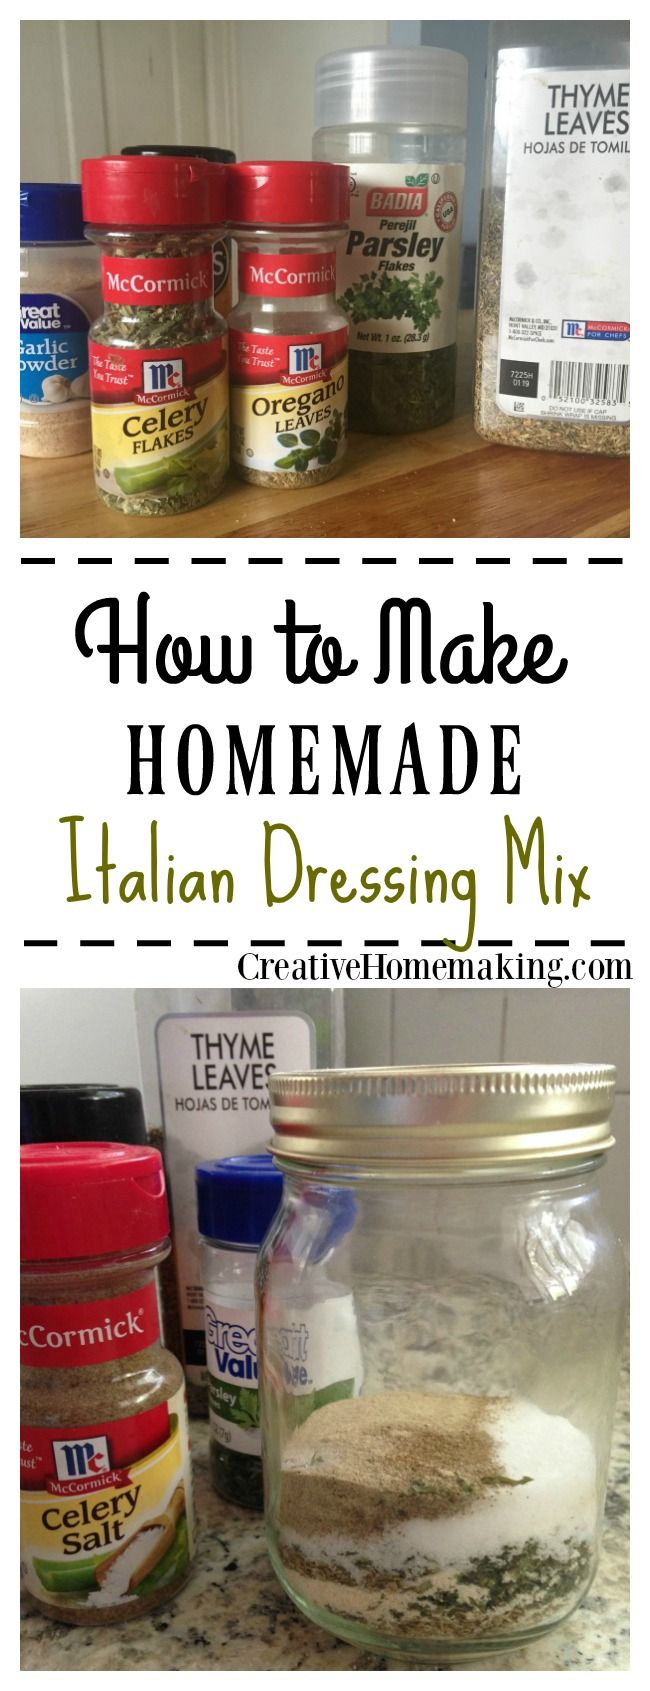 Easy homemade version of Italian seasoning mix. Can be used to make salad dressing or used in other recipes that call for a packet of Italian seasoning mix.